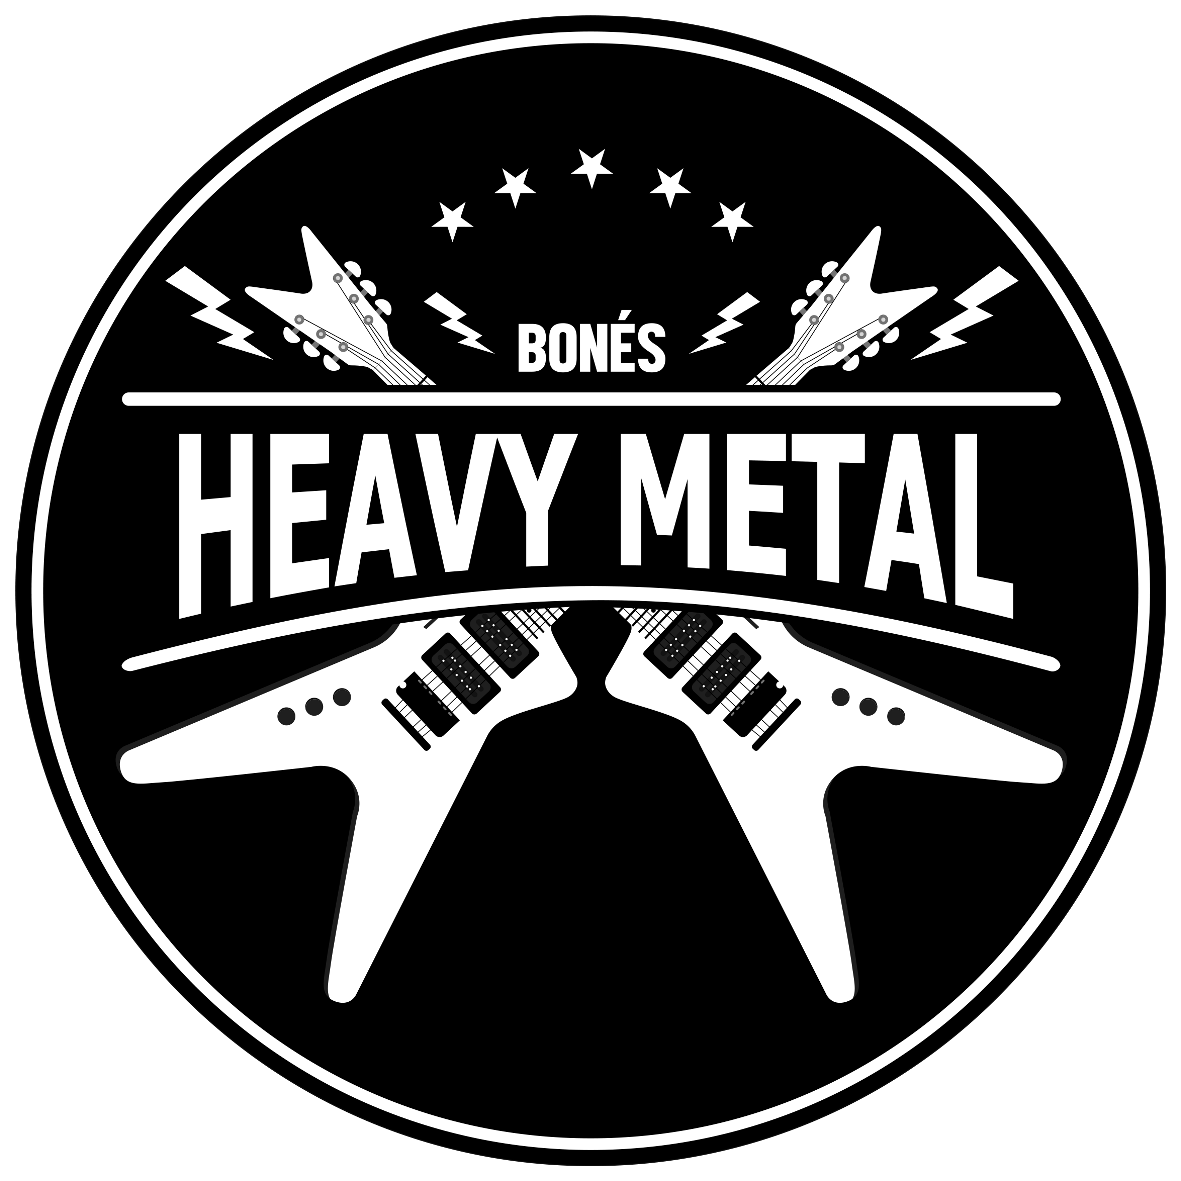 Bonés Heavy Metal